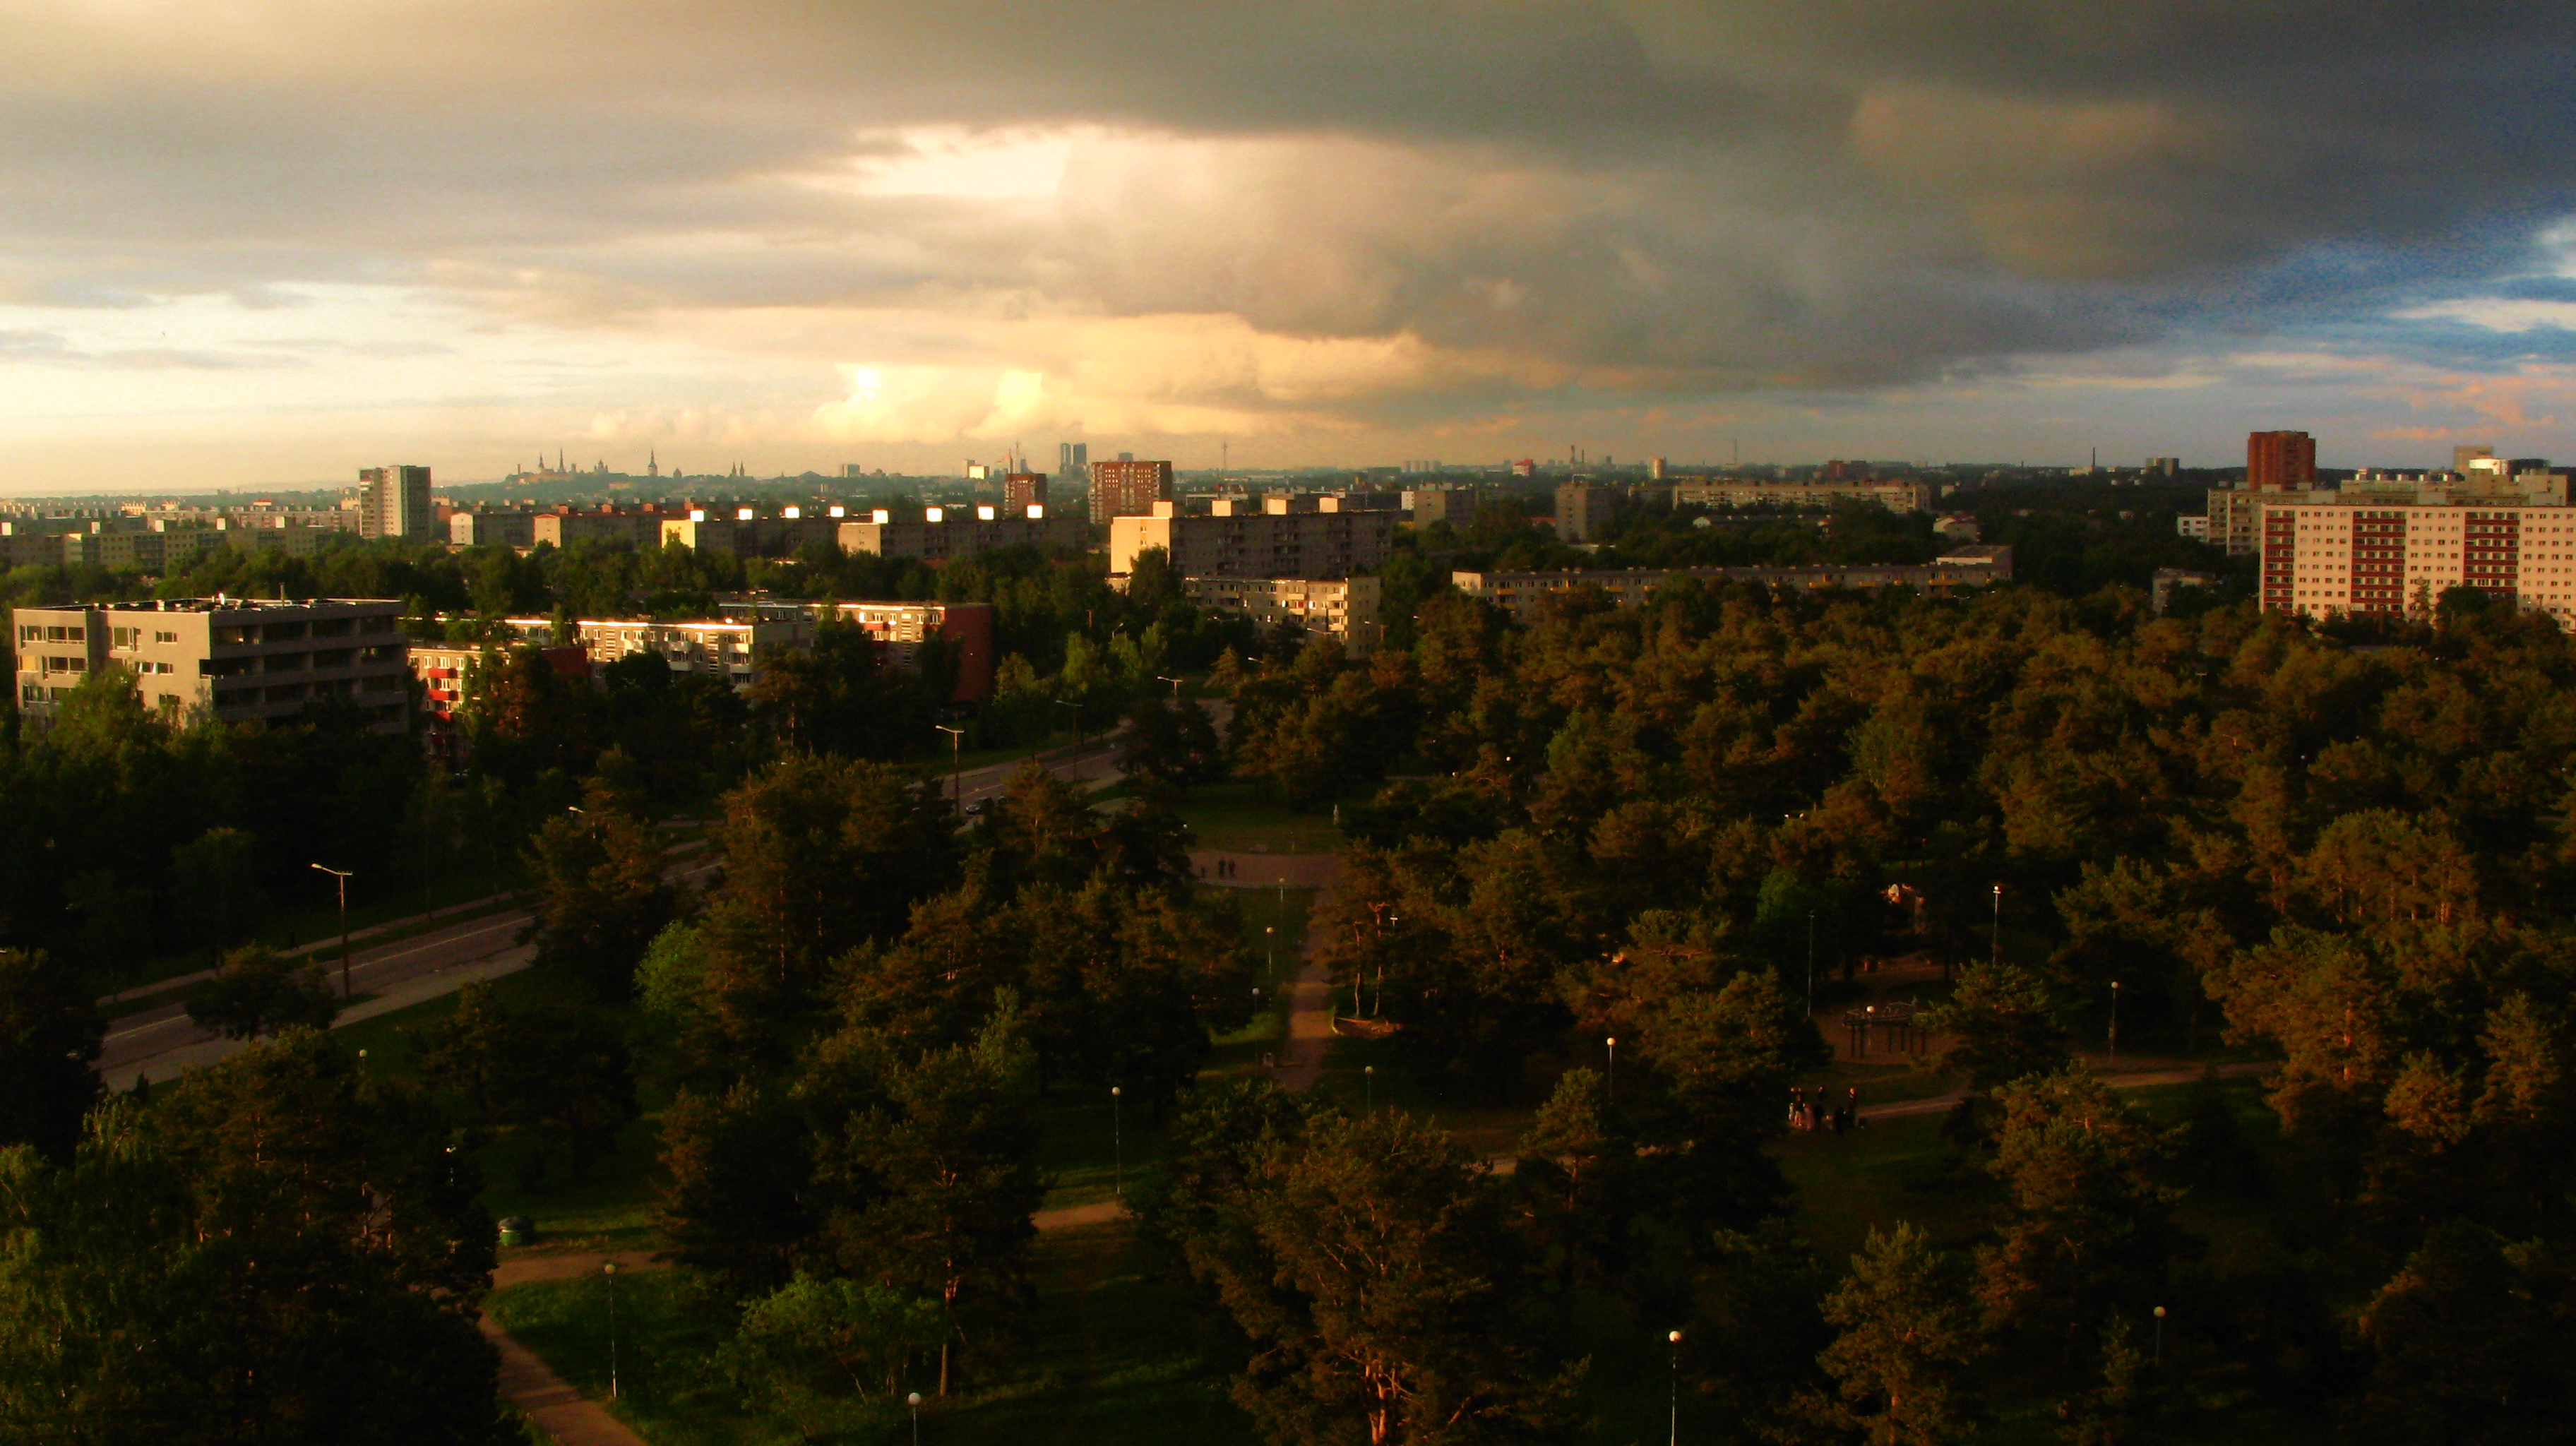 A higher vantage point on a park with the sun shining from a low angle, city center and clouds on the background